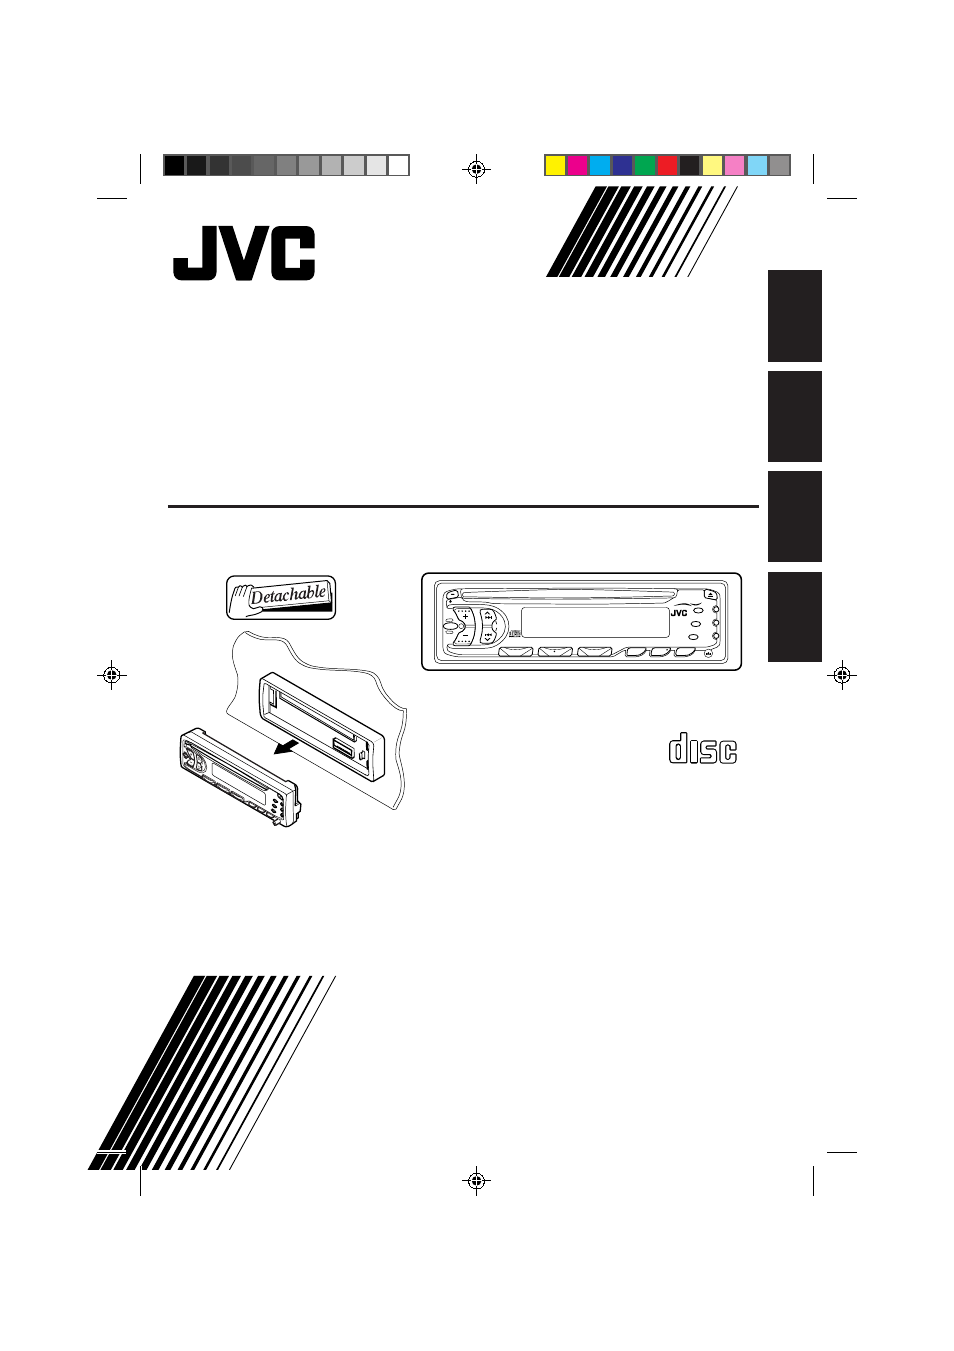 Jvc Kd Sr81bt Wiring Diagram 28 Images Rover 400 Radio S636 Page1 Kds 19 1990 Jeep Cherokee Limited